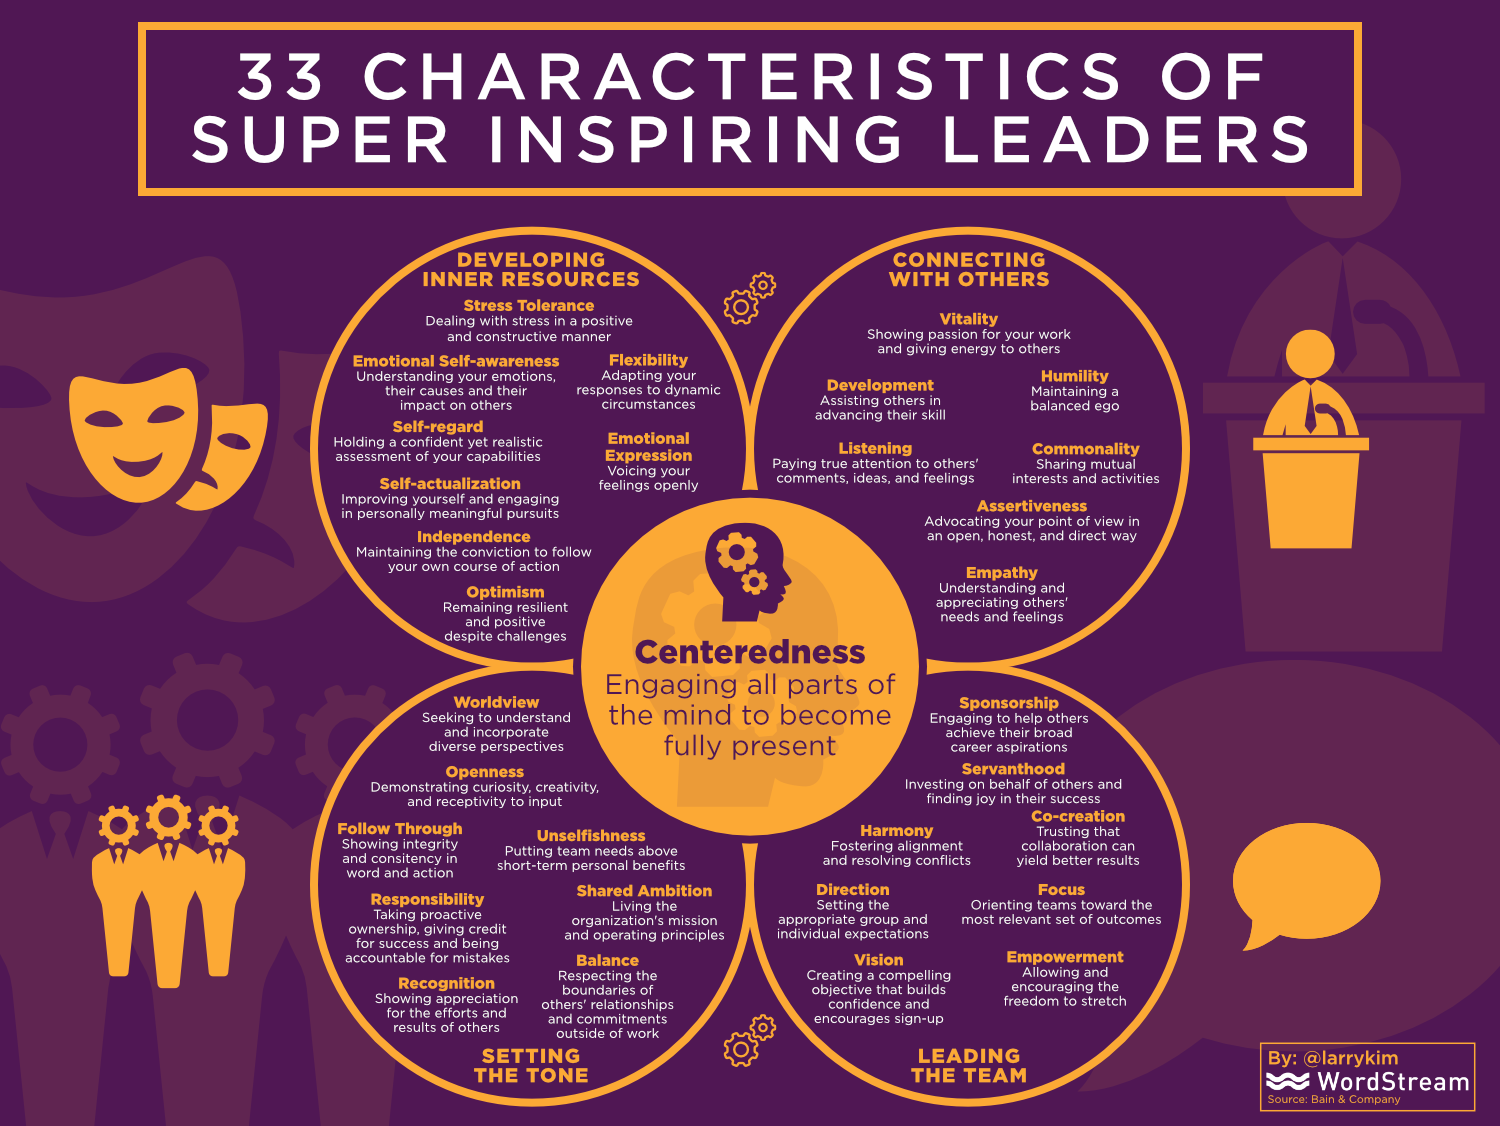 Super Inspiring Leaders Have these 33 Characteristics [Infographic]